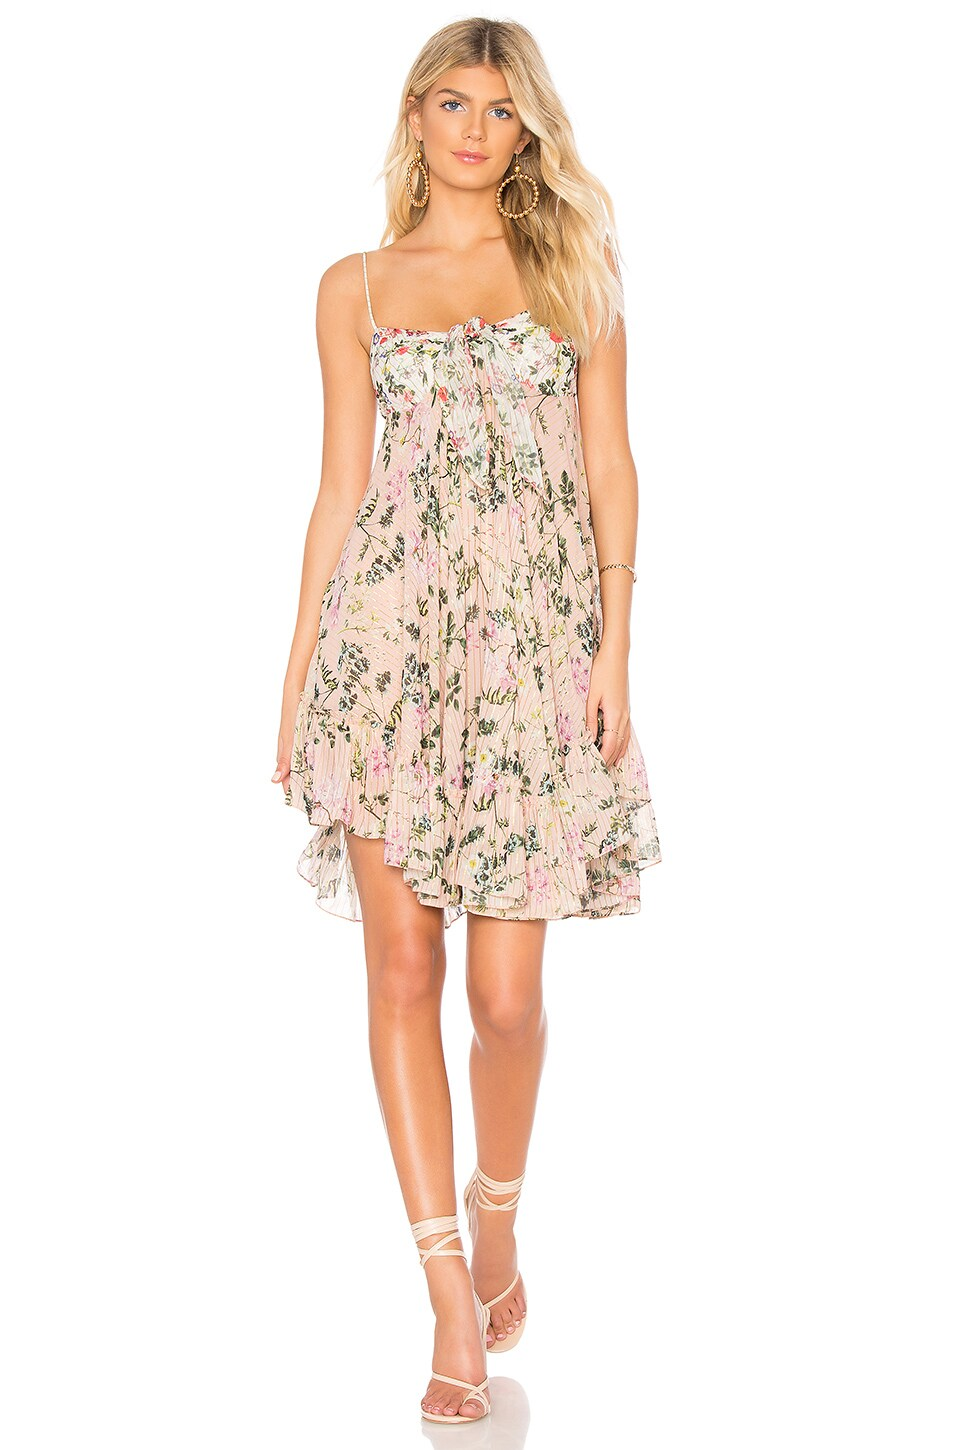 ROCOCO SAND x REVOLVE Flora Mini Dress in Pink & White